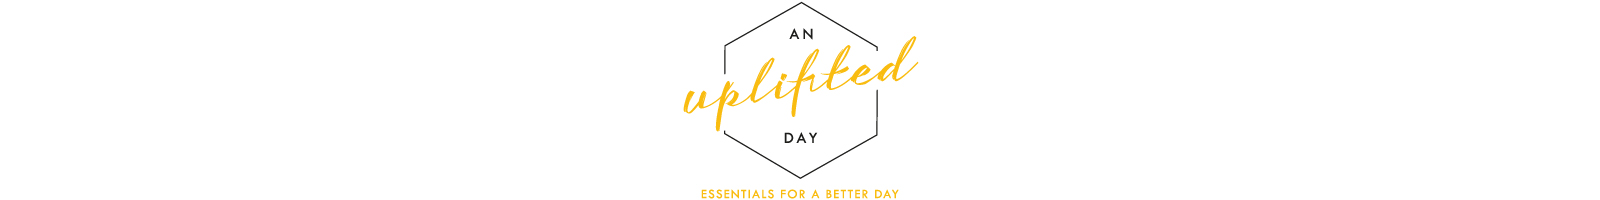 An Uplifted Day